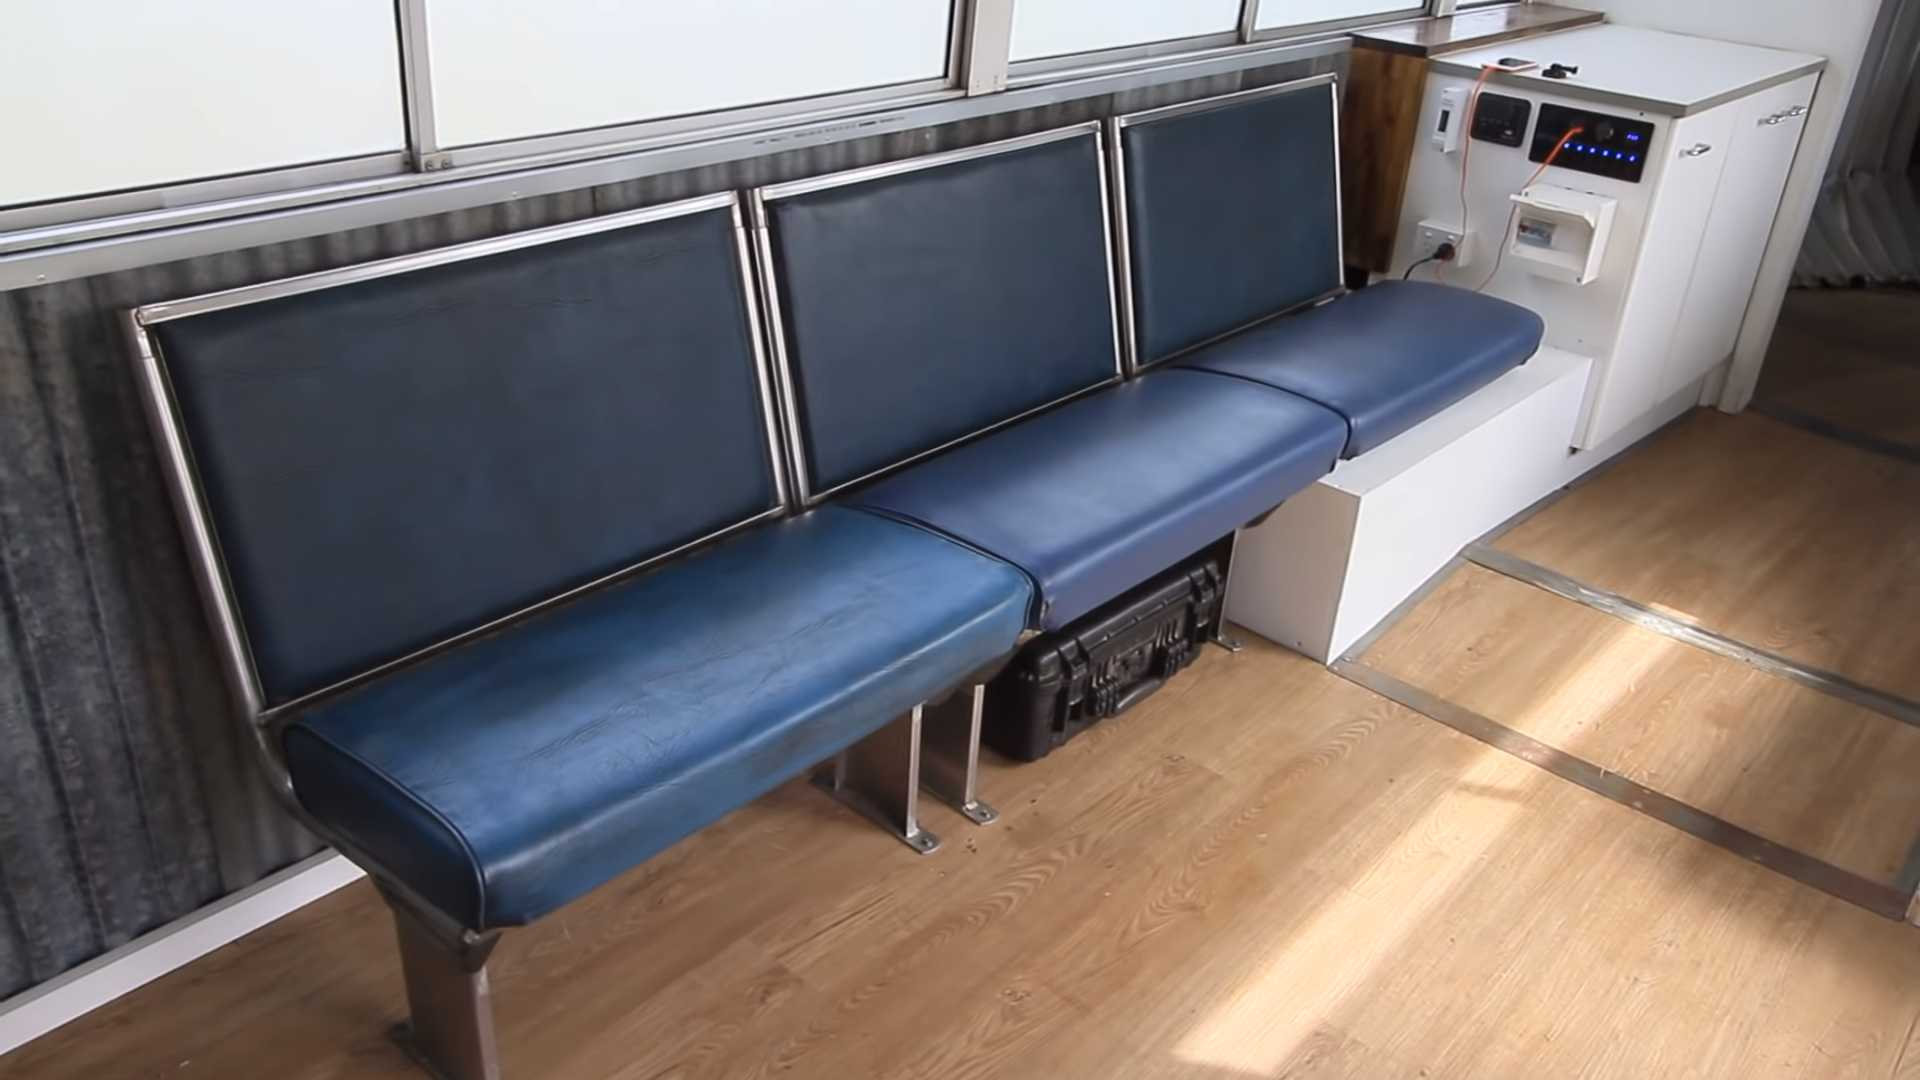 Prime Bonkers Bendy Bus Rv Conversion Is Like The Tardis From Dr Who Home Interior And Landscaping Oversignezvosmurscom